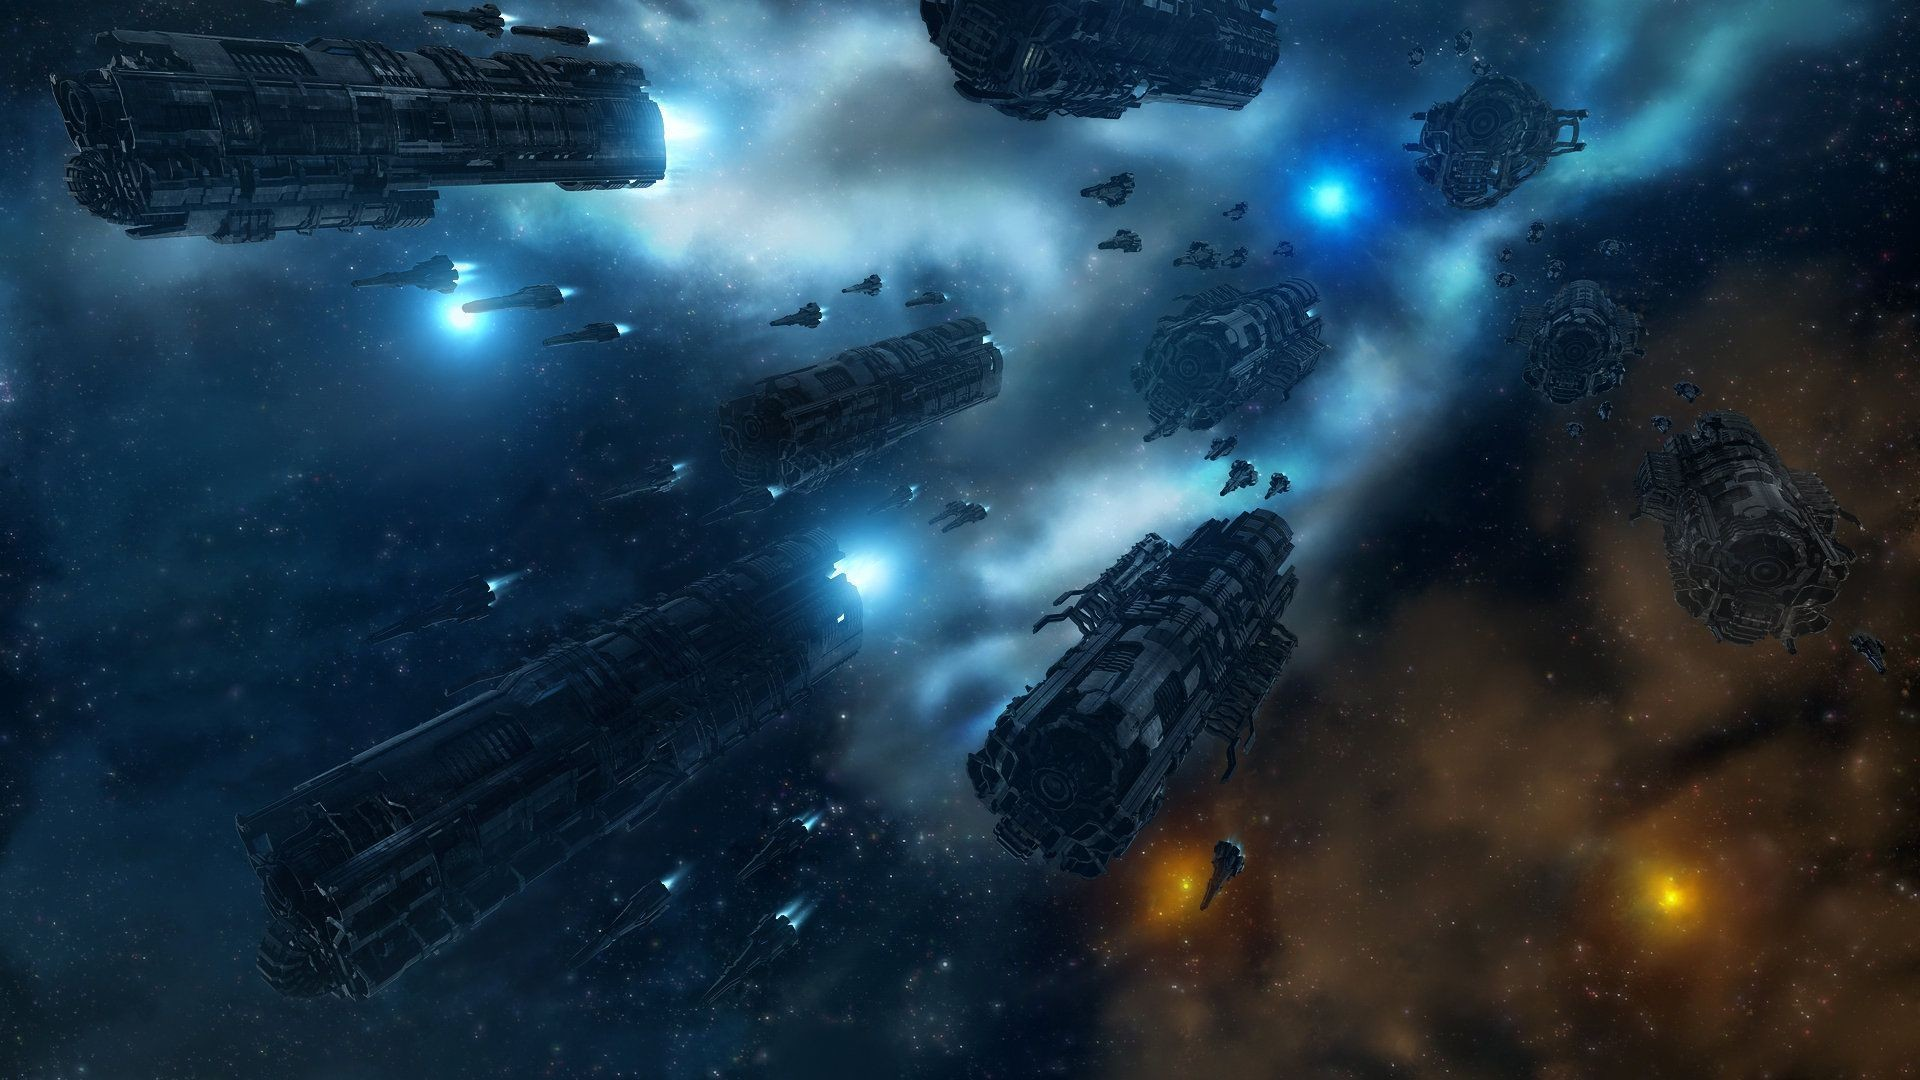 Res: 1920x1080, FREE SPACE BACKGROUNDS AND WALLPAPERS Space Backgrounds